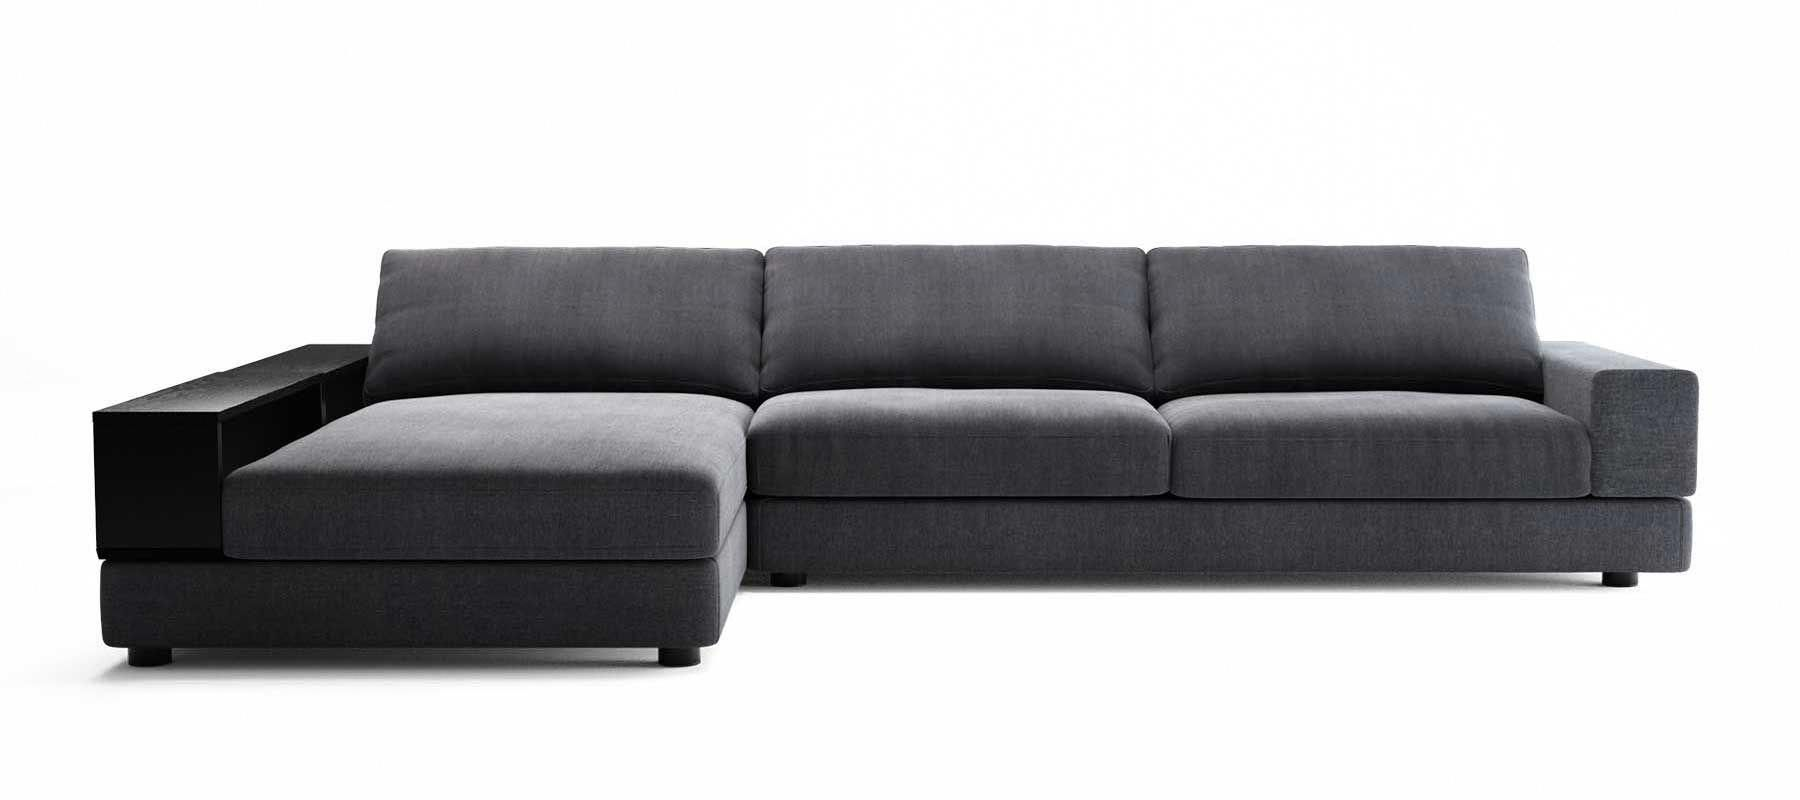 Cheap Modular Lounges Jasper Modular Sofa Award Winning Design Modular Lounge